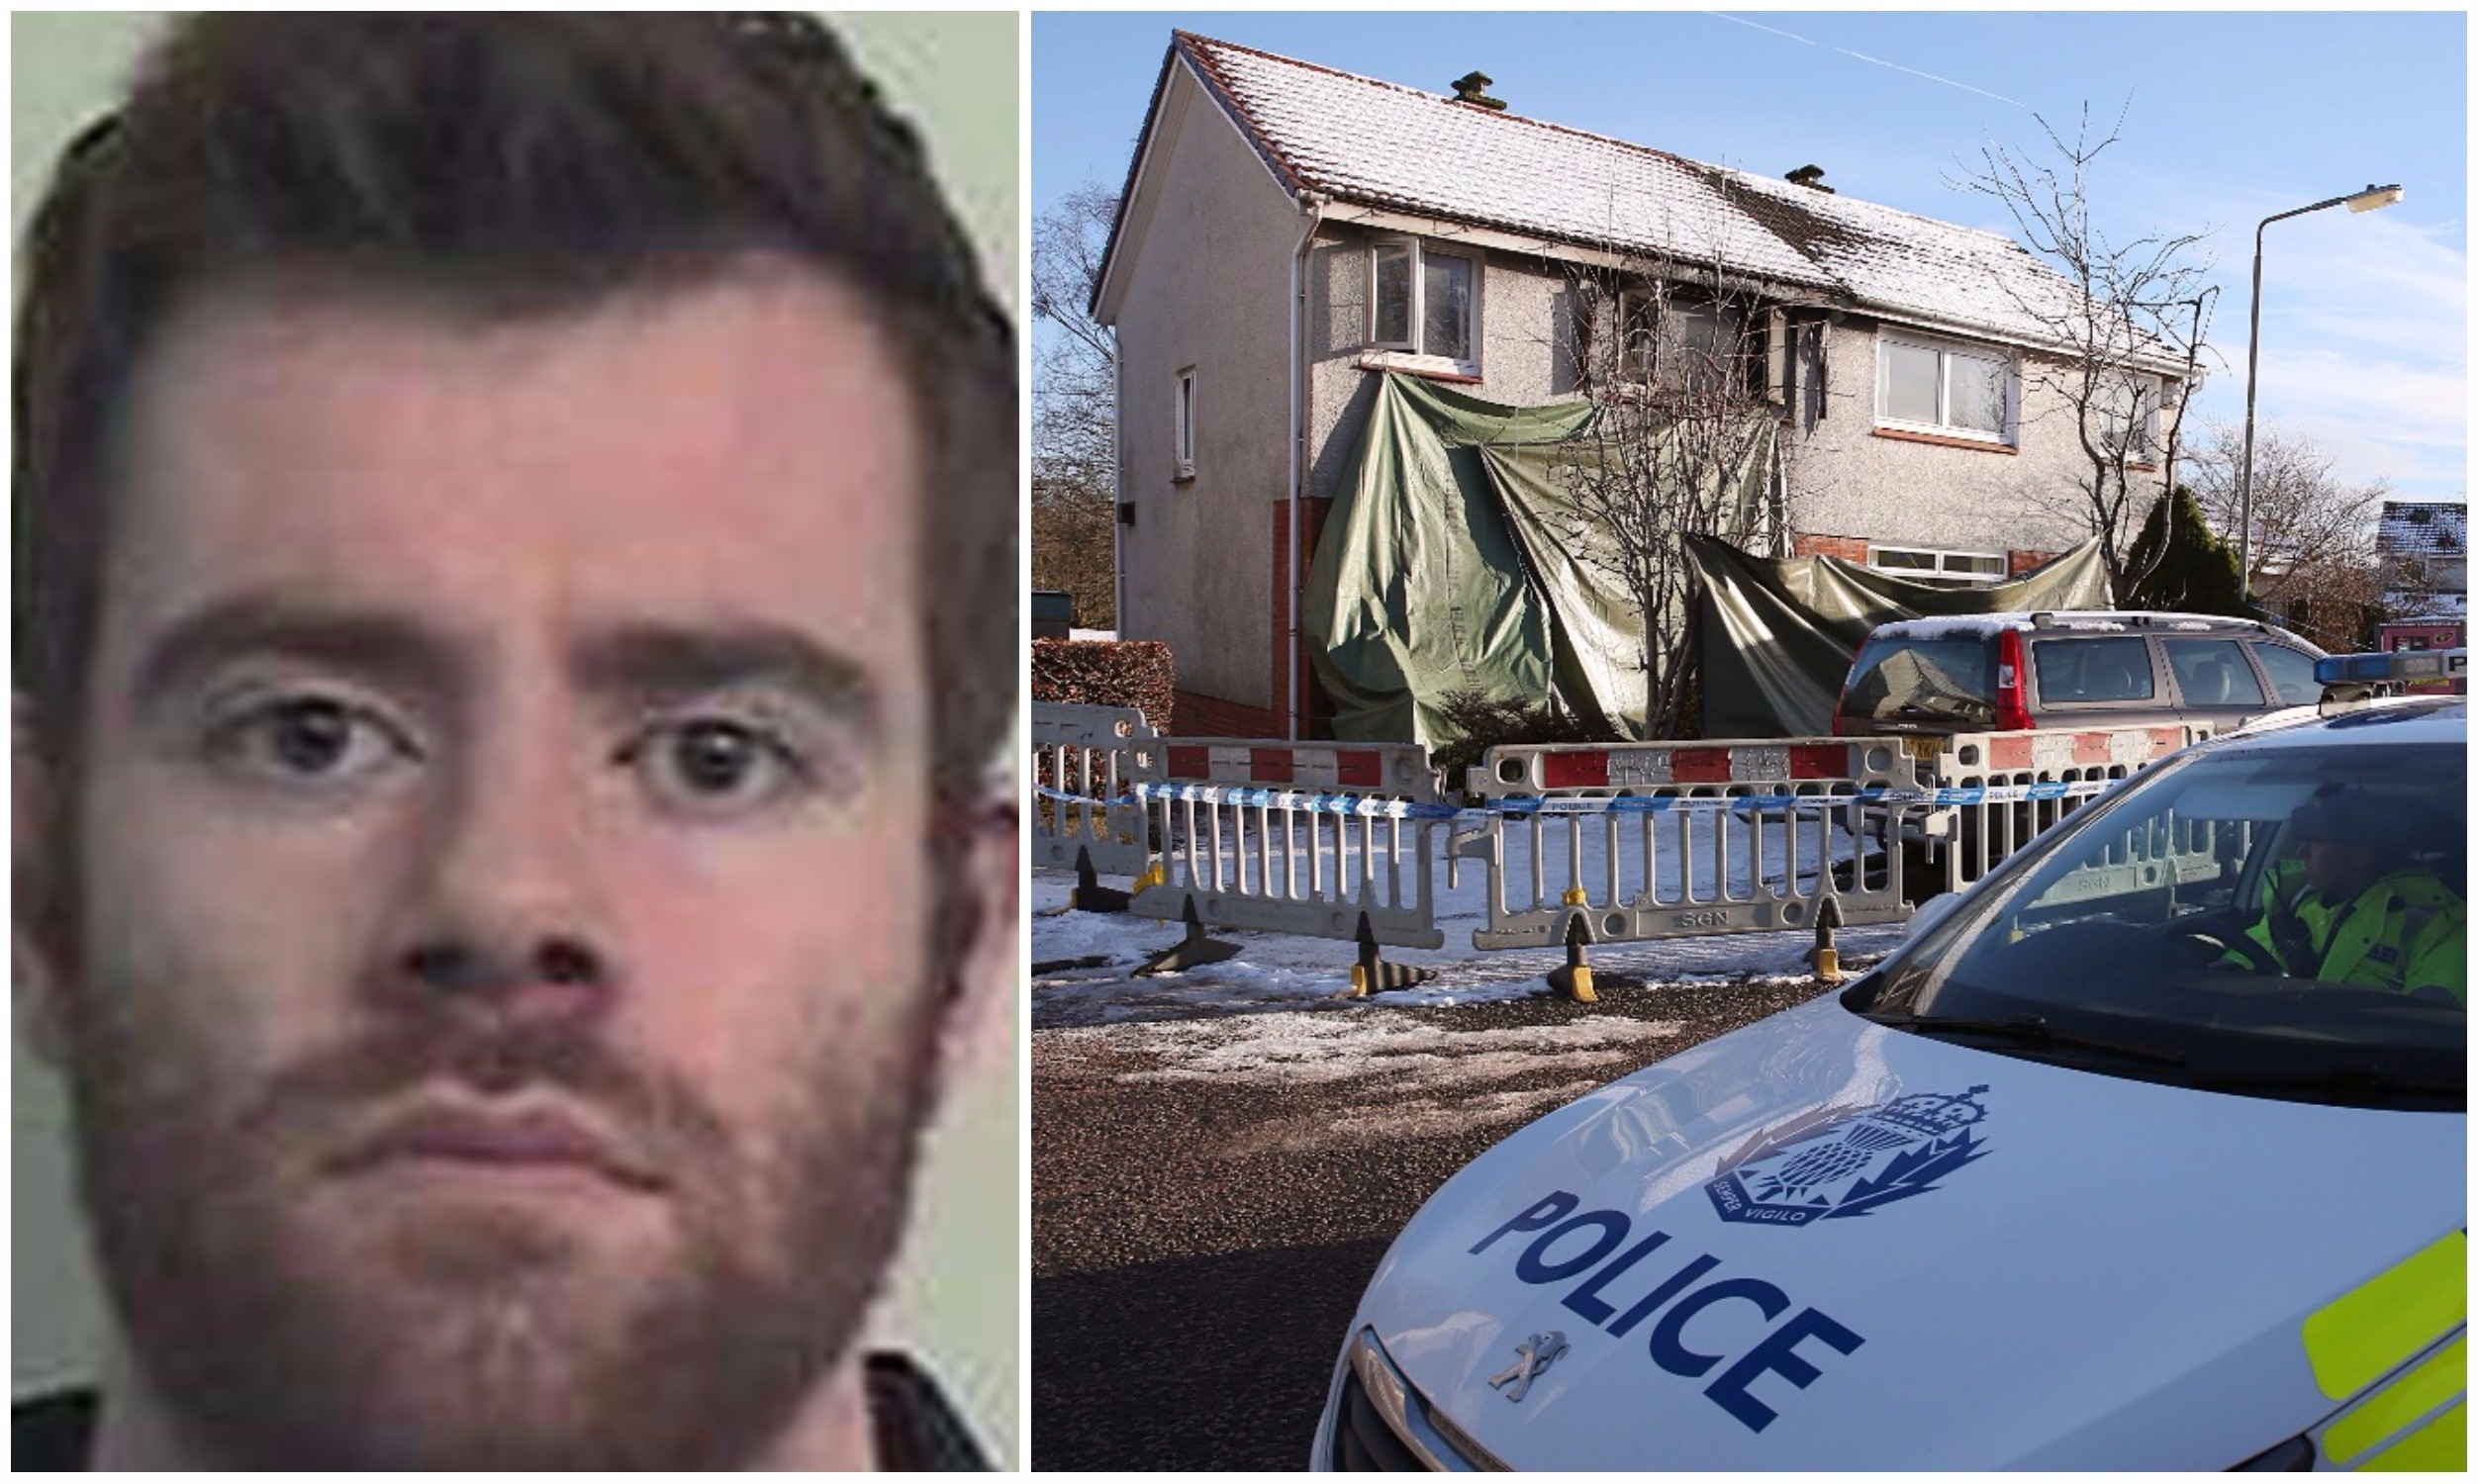 Blair Logan poured petrol on his younger brother Cameron in the family home.